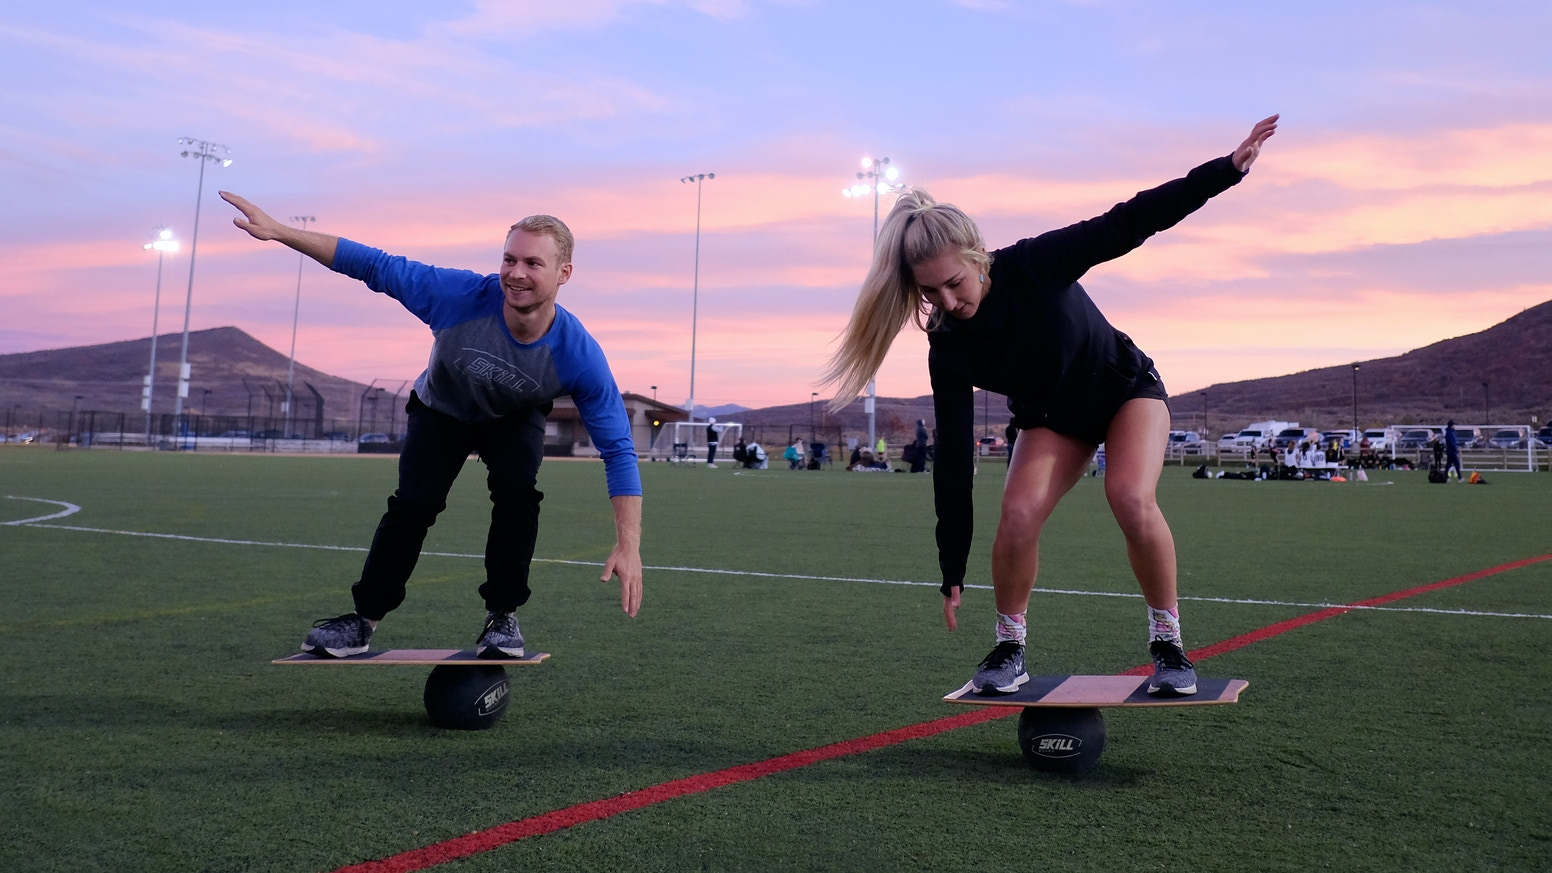 Skill Board makes a balance board that challenges your balance in a 360 degree range of motion